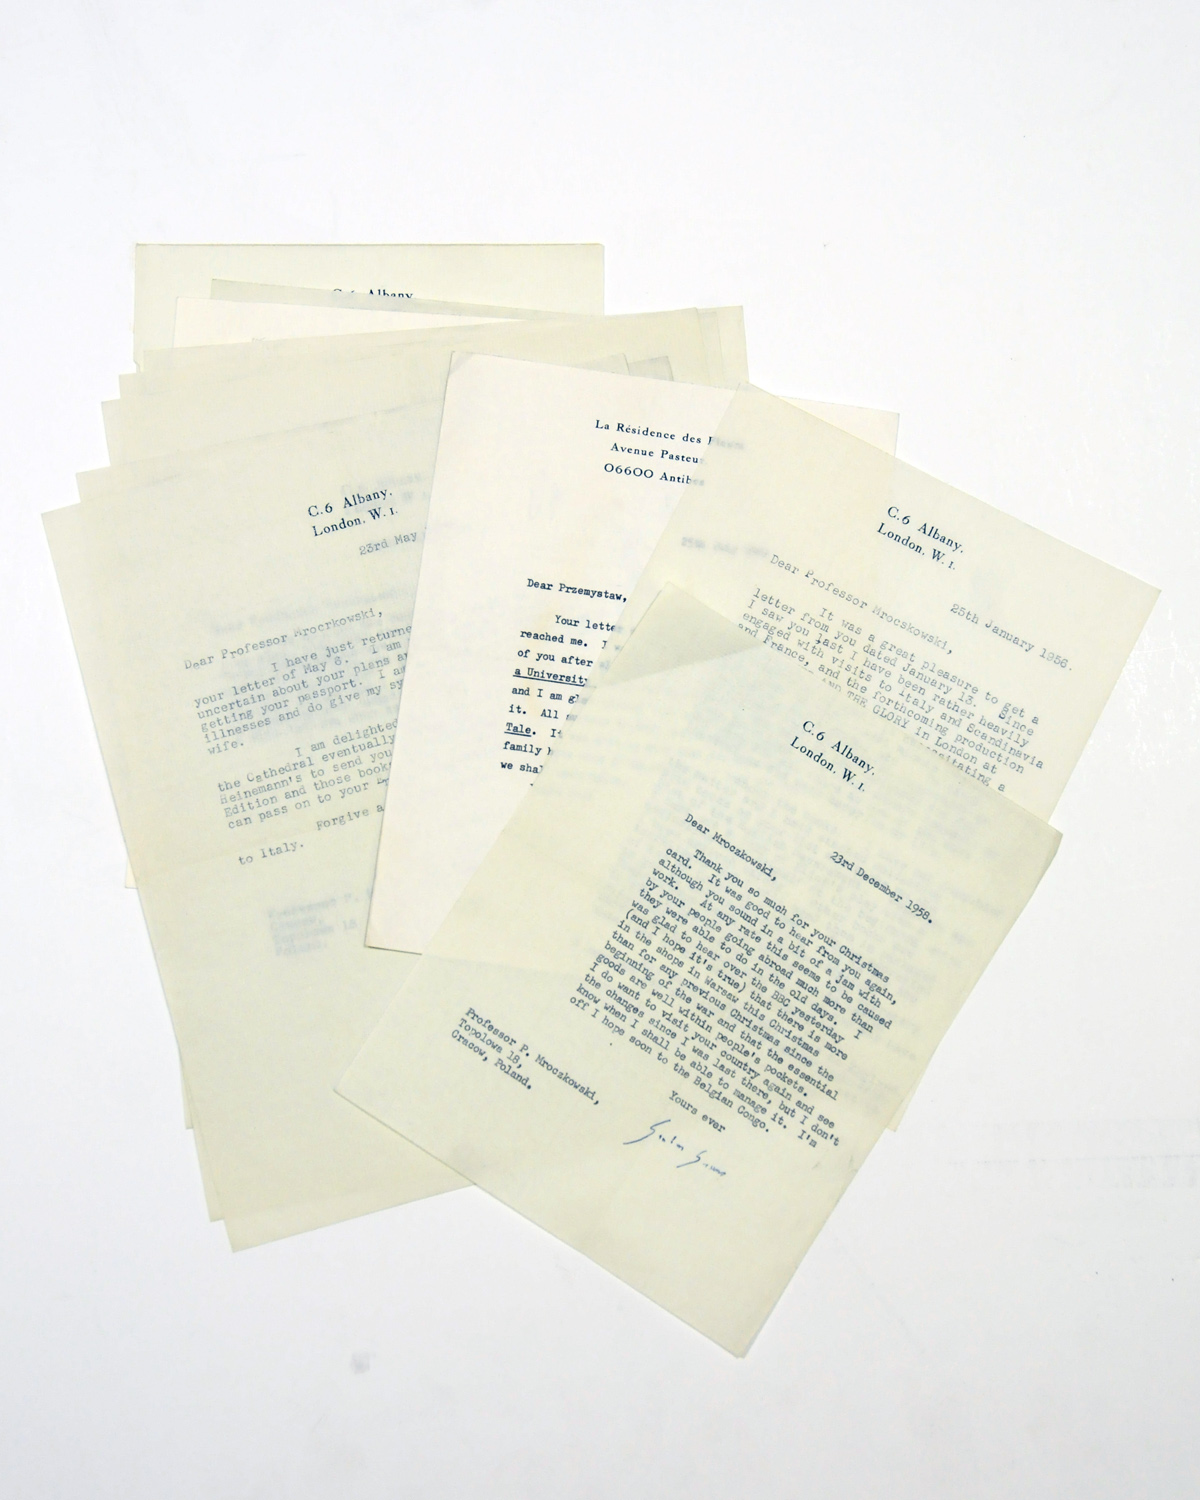 GREENE, Graham (1904-1991). A series of 11 typed letters signed ('Graham Greene', 'Graham') to Professor Przemyslaw Mroczkowski, C6 Albany, London and La Résidence des Fleurs, Antibes, 25 January 1956 - 25 July 1988 (all but two before 1960), referring to their meeting in Cracow, his gifts of books (including an inscribed copy of Murder in the Cathedral), the preparations for a stage production of The Power and the Glory, and a trip to the Belgian Congo, 'I am about half way through a novel set in a leproserie of the Belgian Congo [A Burnt Out Case]', together 11 pages, 4to, with a secretarial letter, and an inscribed copy ('For Professor Mroczkowksi with happy memories of our first meeting in Cracow, Nov. 18, 1955') of The Power and the Glory (Heinemann Pocket Edition, 1945). Provenance: by descent from the recipient. 	 (12)